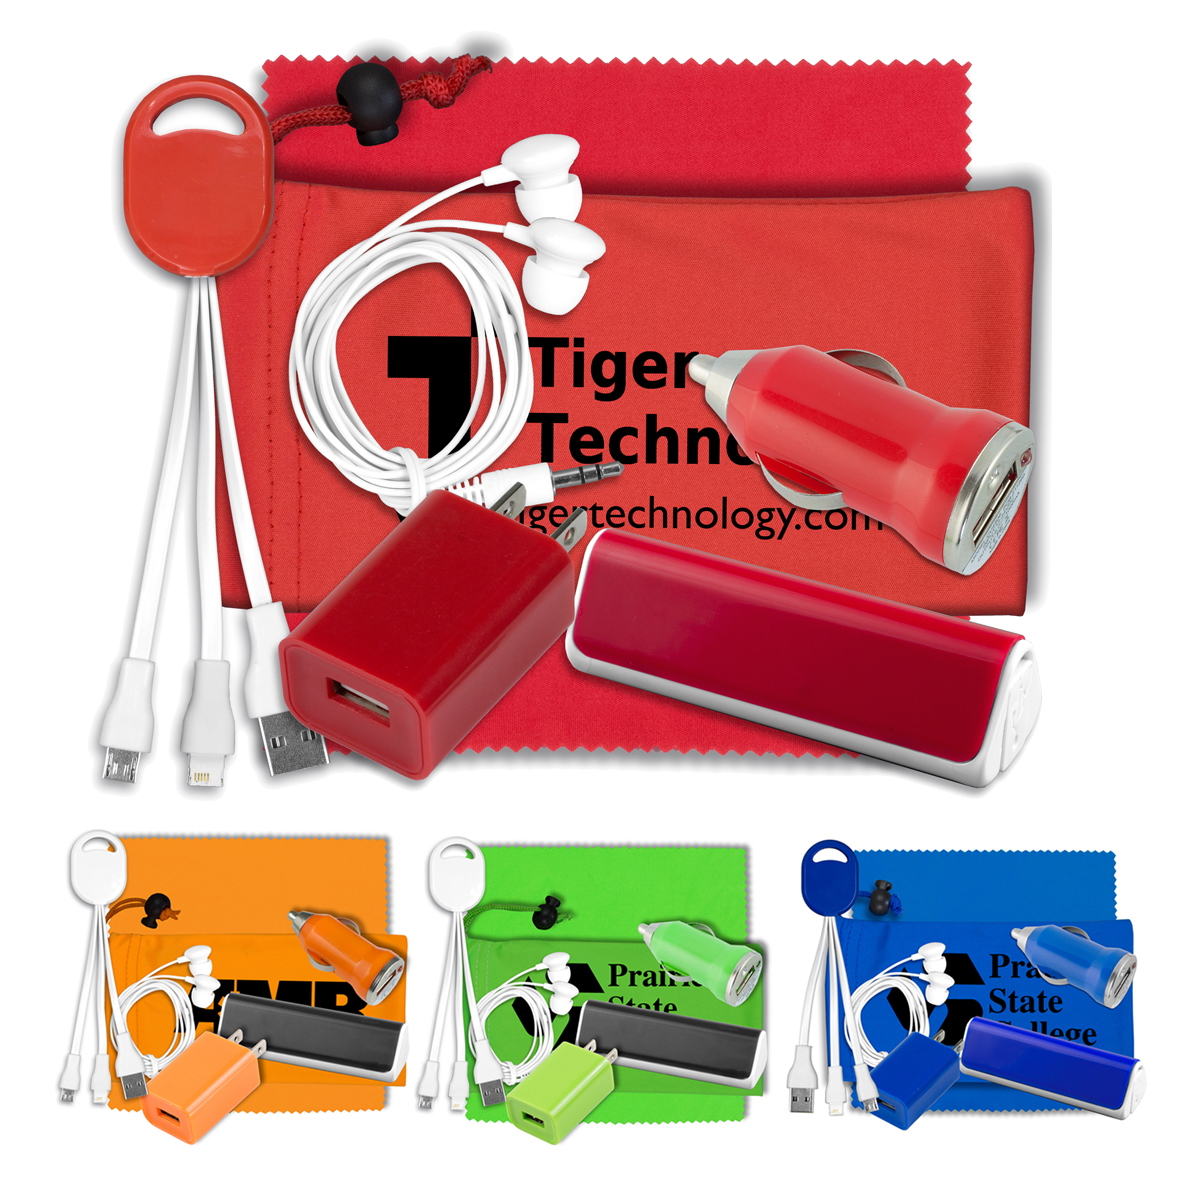 Mobile Tech Integrated Power Bank and Charging Kit with Earbuds and Microfiber Cleaning Cloth in Microfiber Cinch Pouch